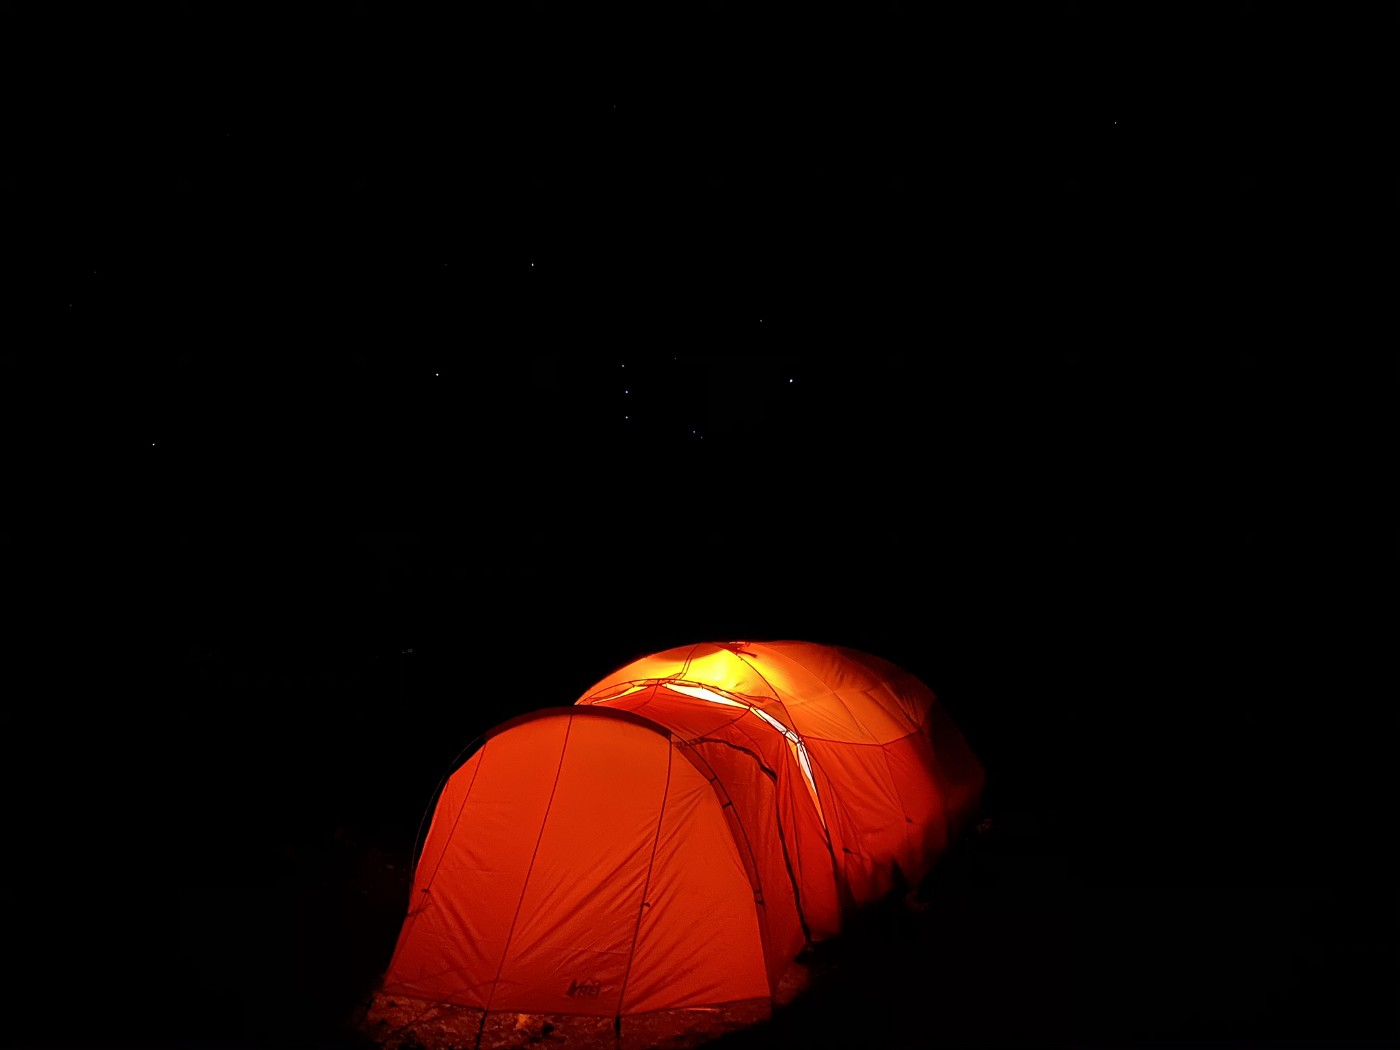 Photo by Stance Hurst, Tent under the Starry Sky